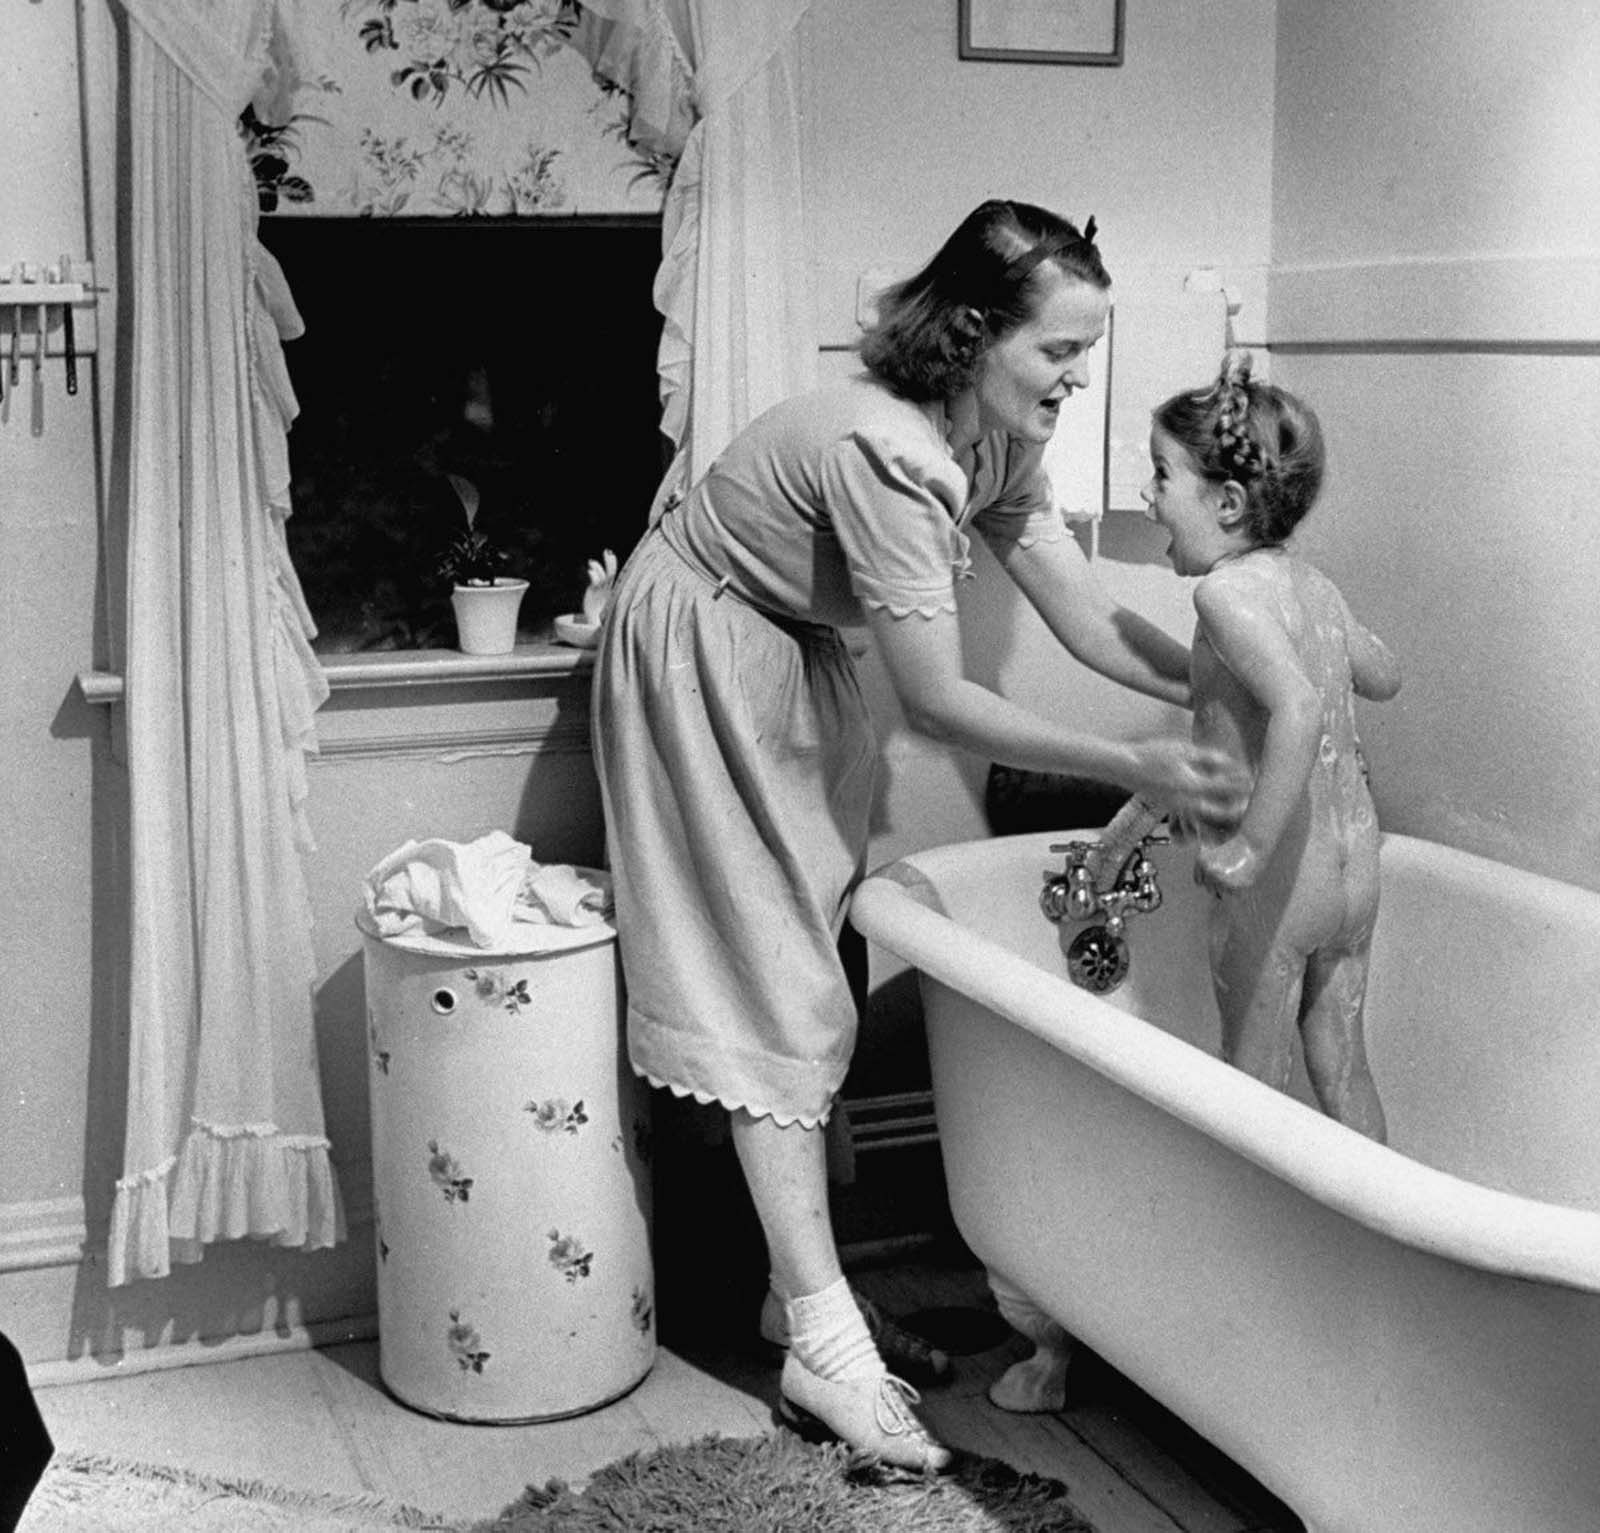 Jane bathing her daughter Pamela, 4, before dressing her for bed at night.